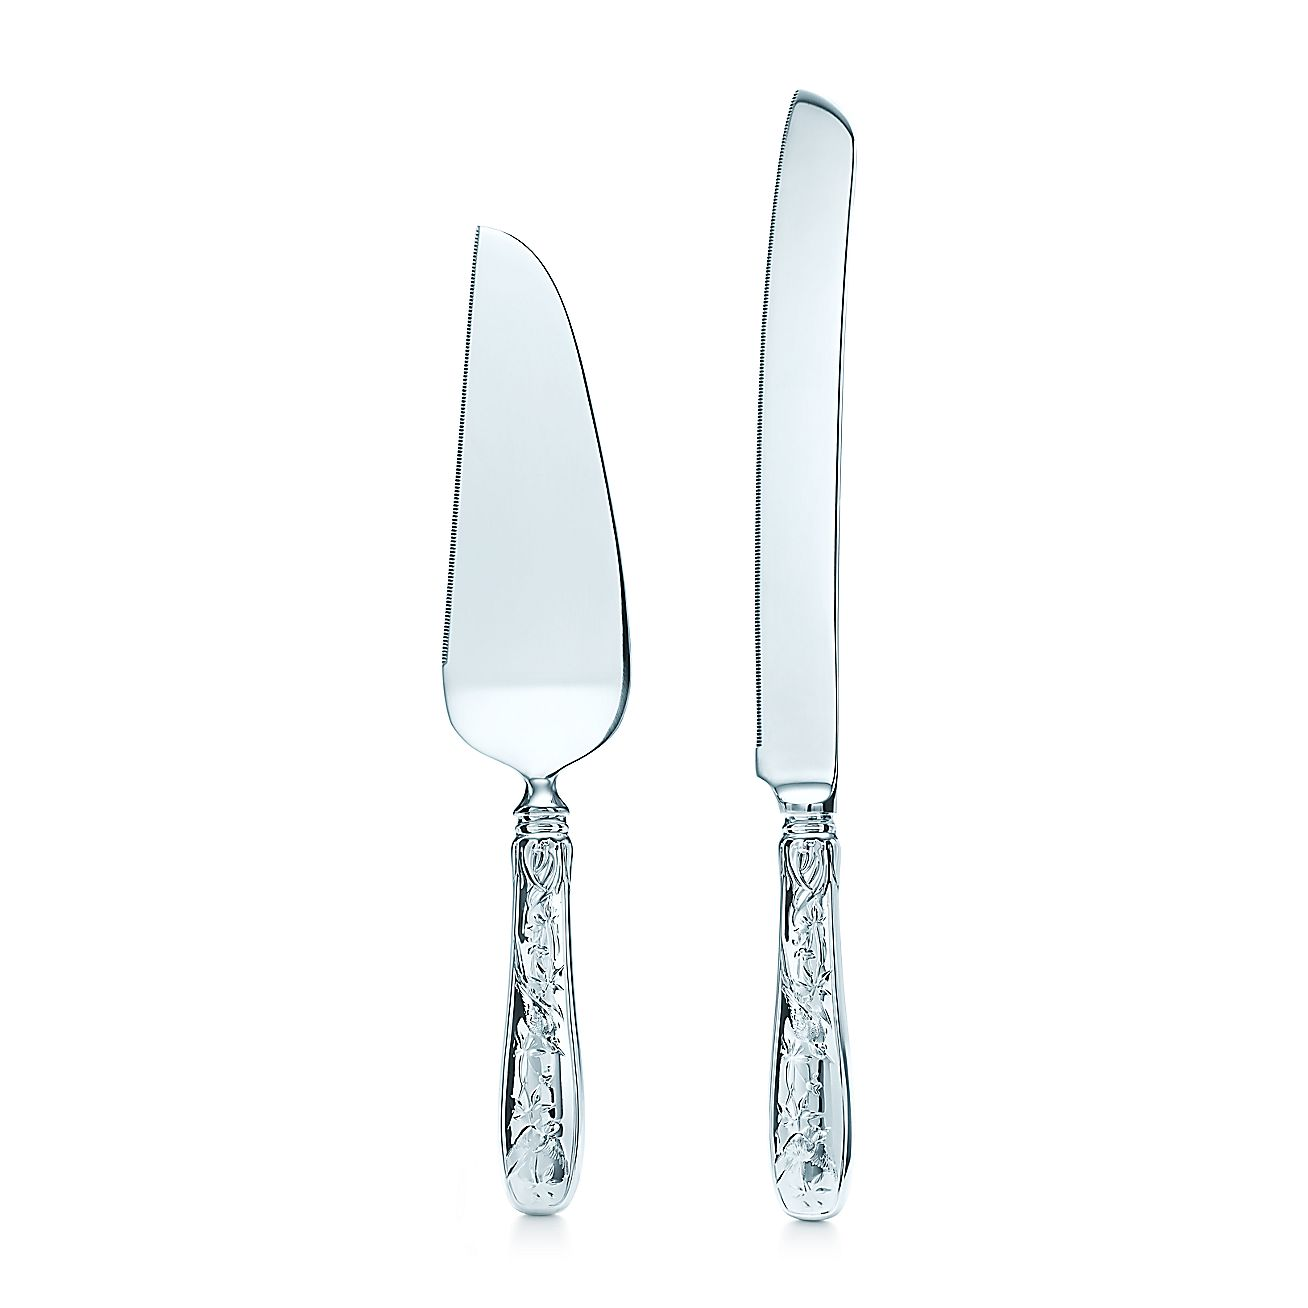 Audubon Cake Knife And Server In Sterling Silver